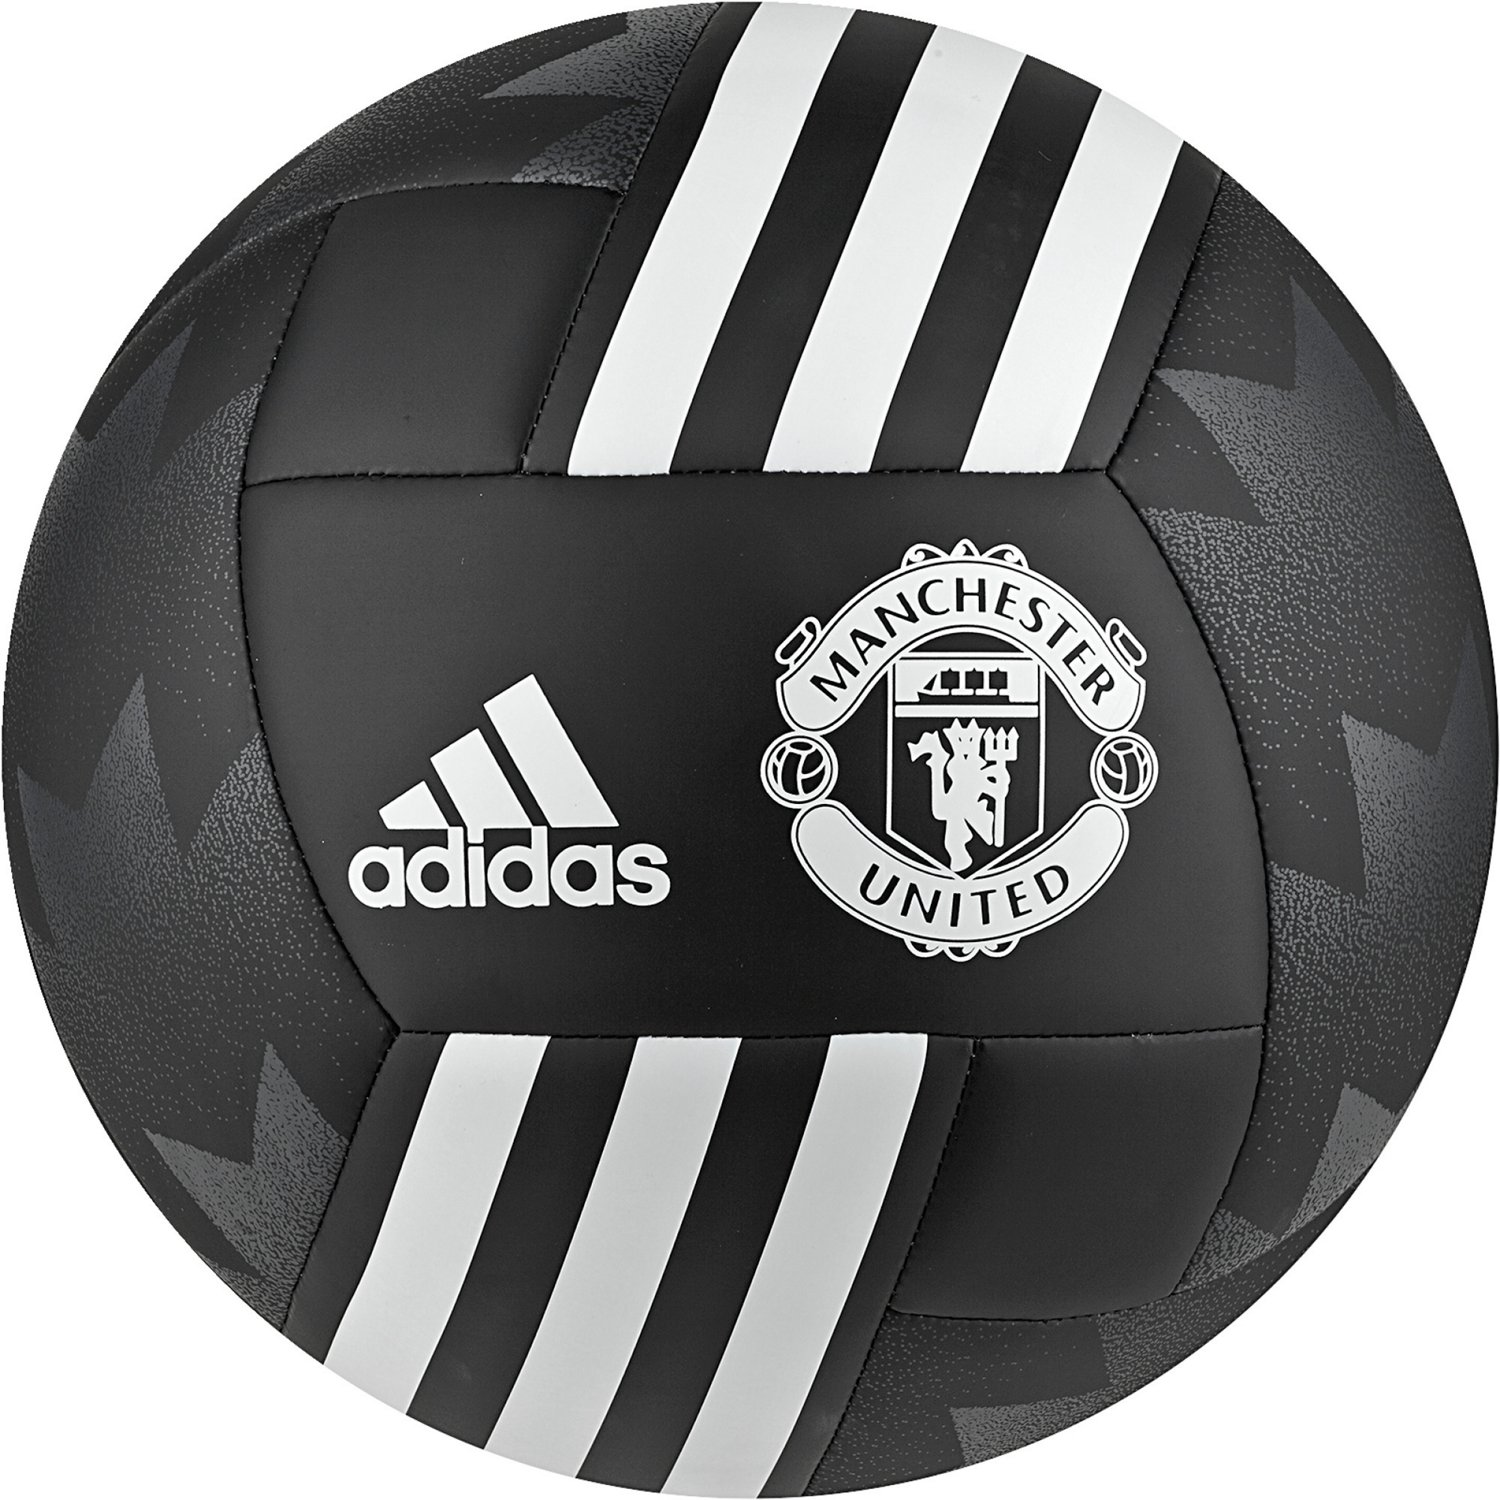 c7a4afe8fa52a Display product reviews for adidas Manchester United Soccer Ball